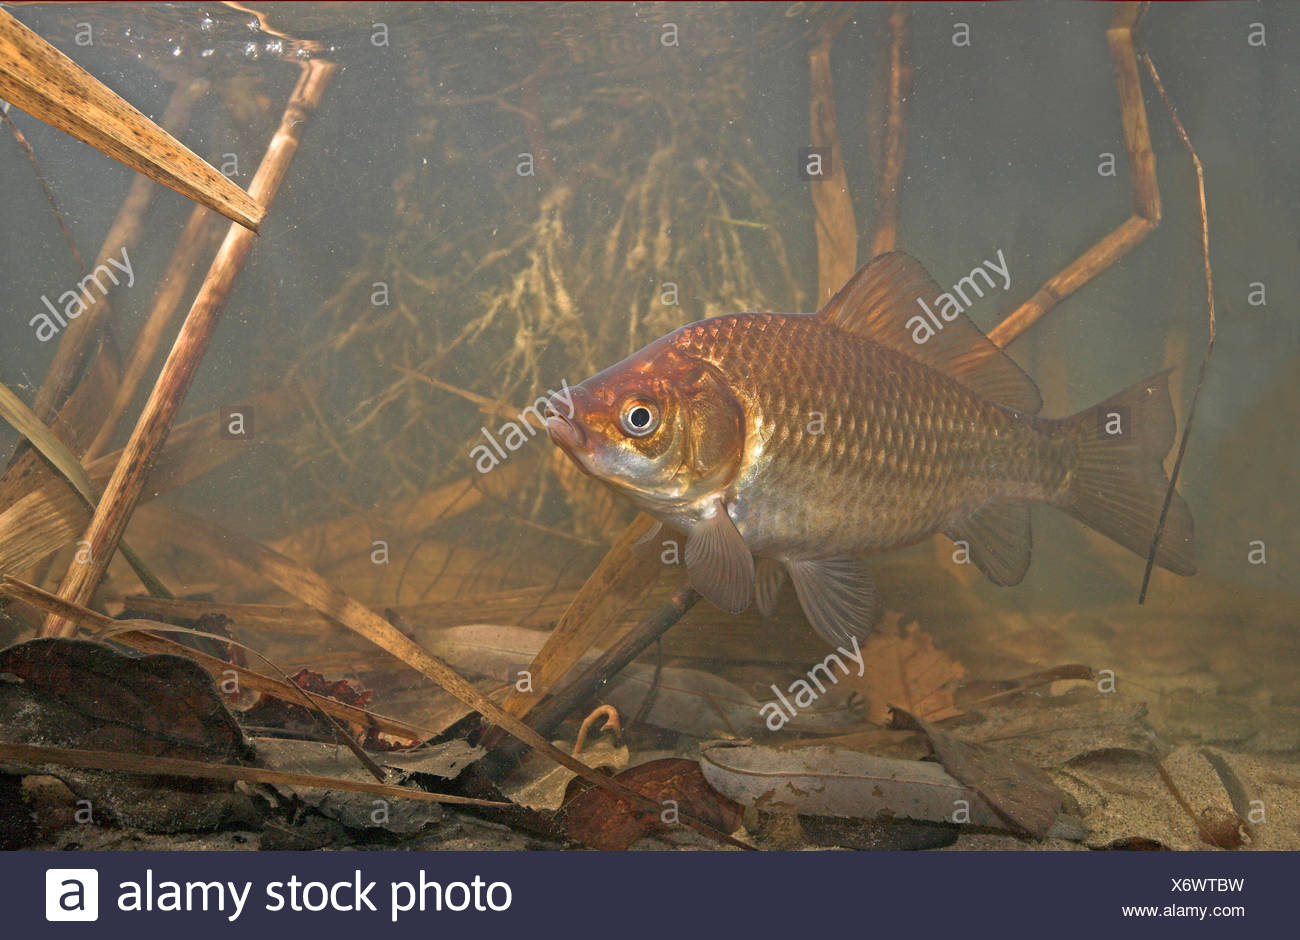 Photo of a gibel carp swimming in its environment underwater between reed and dead leafs. Carassius auratus gibelio. Stock Photo